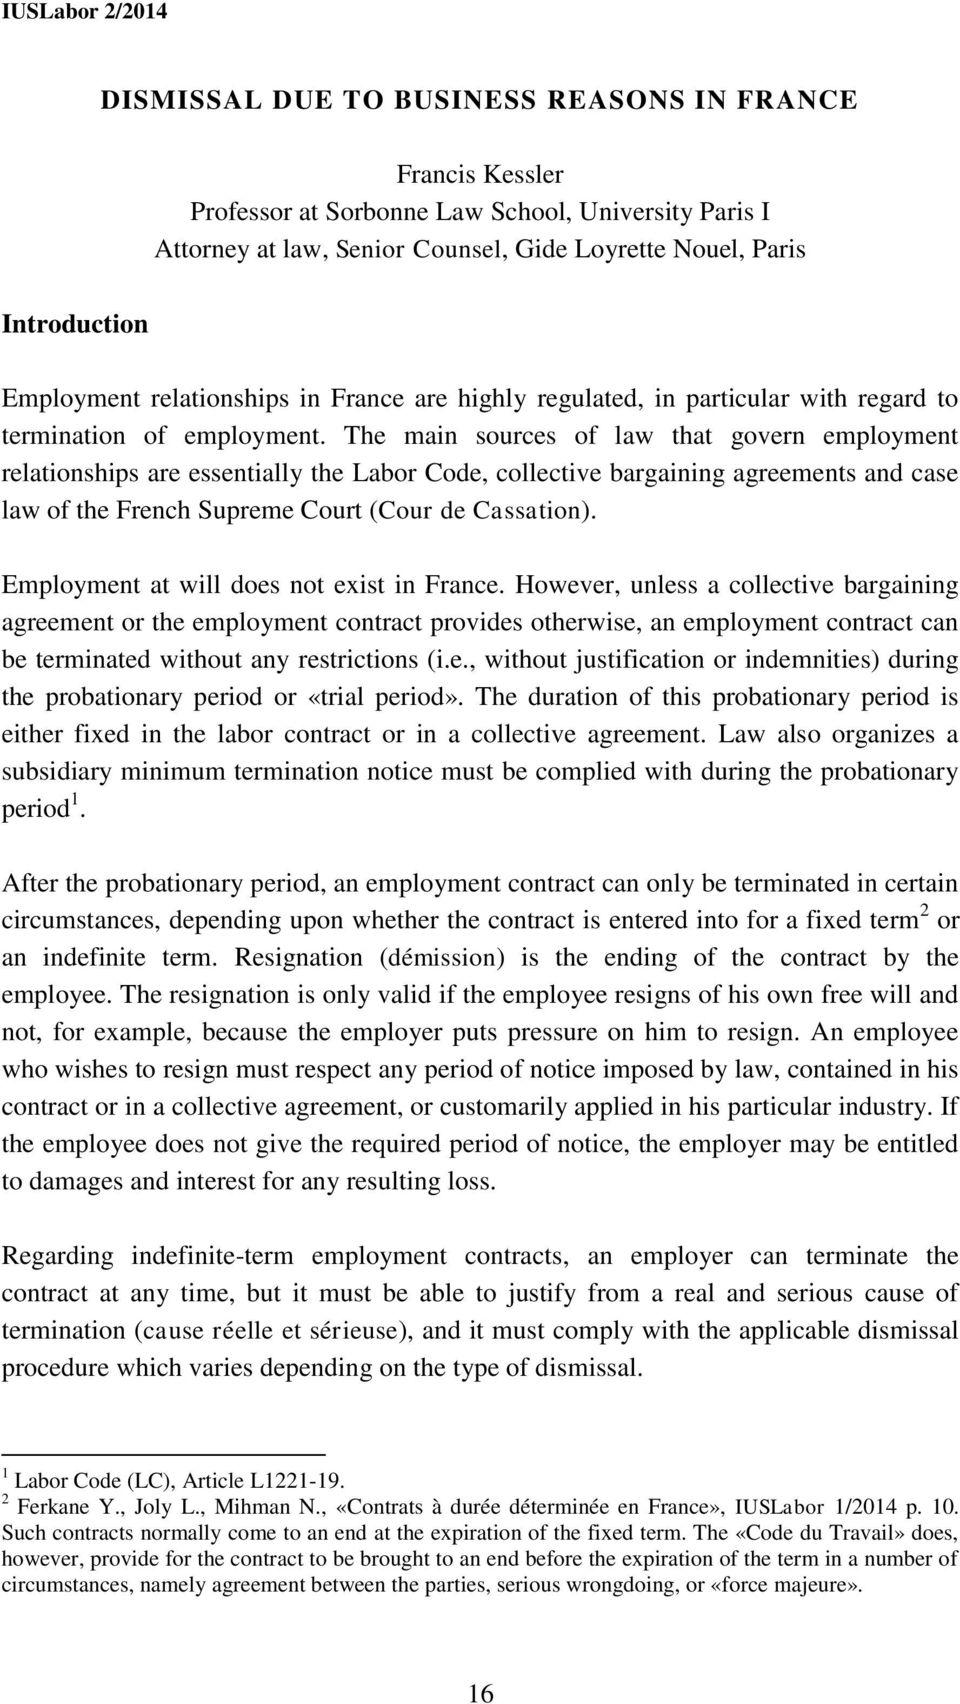 The main sources of law that govern employment relationships are essentially the Labor Code, collective bargaining agreements and case law of the French Supreme Court (Cour de Cassation).